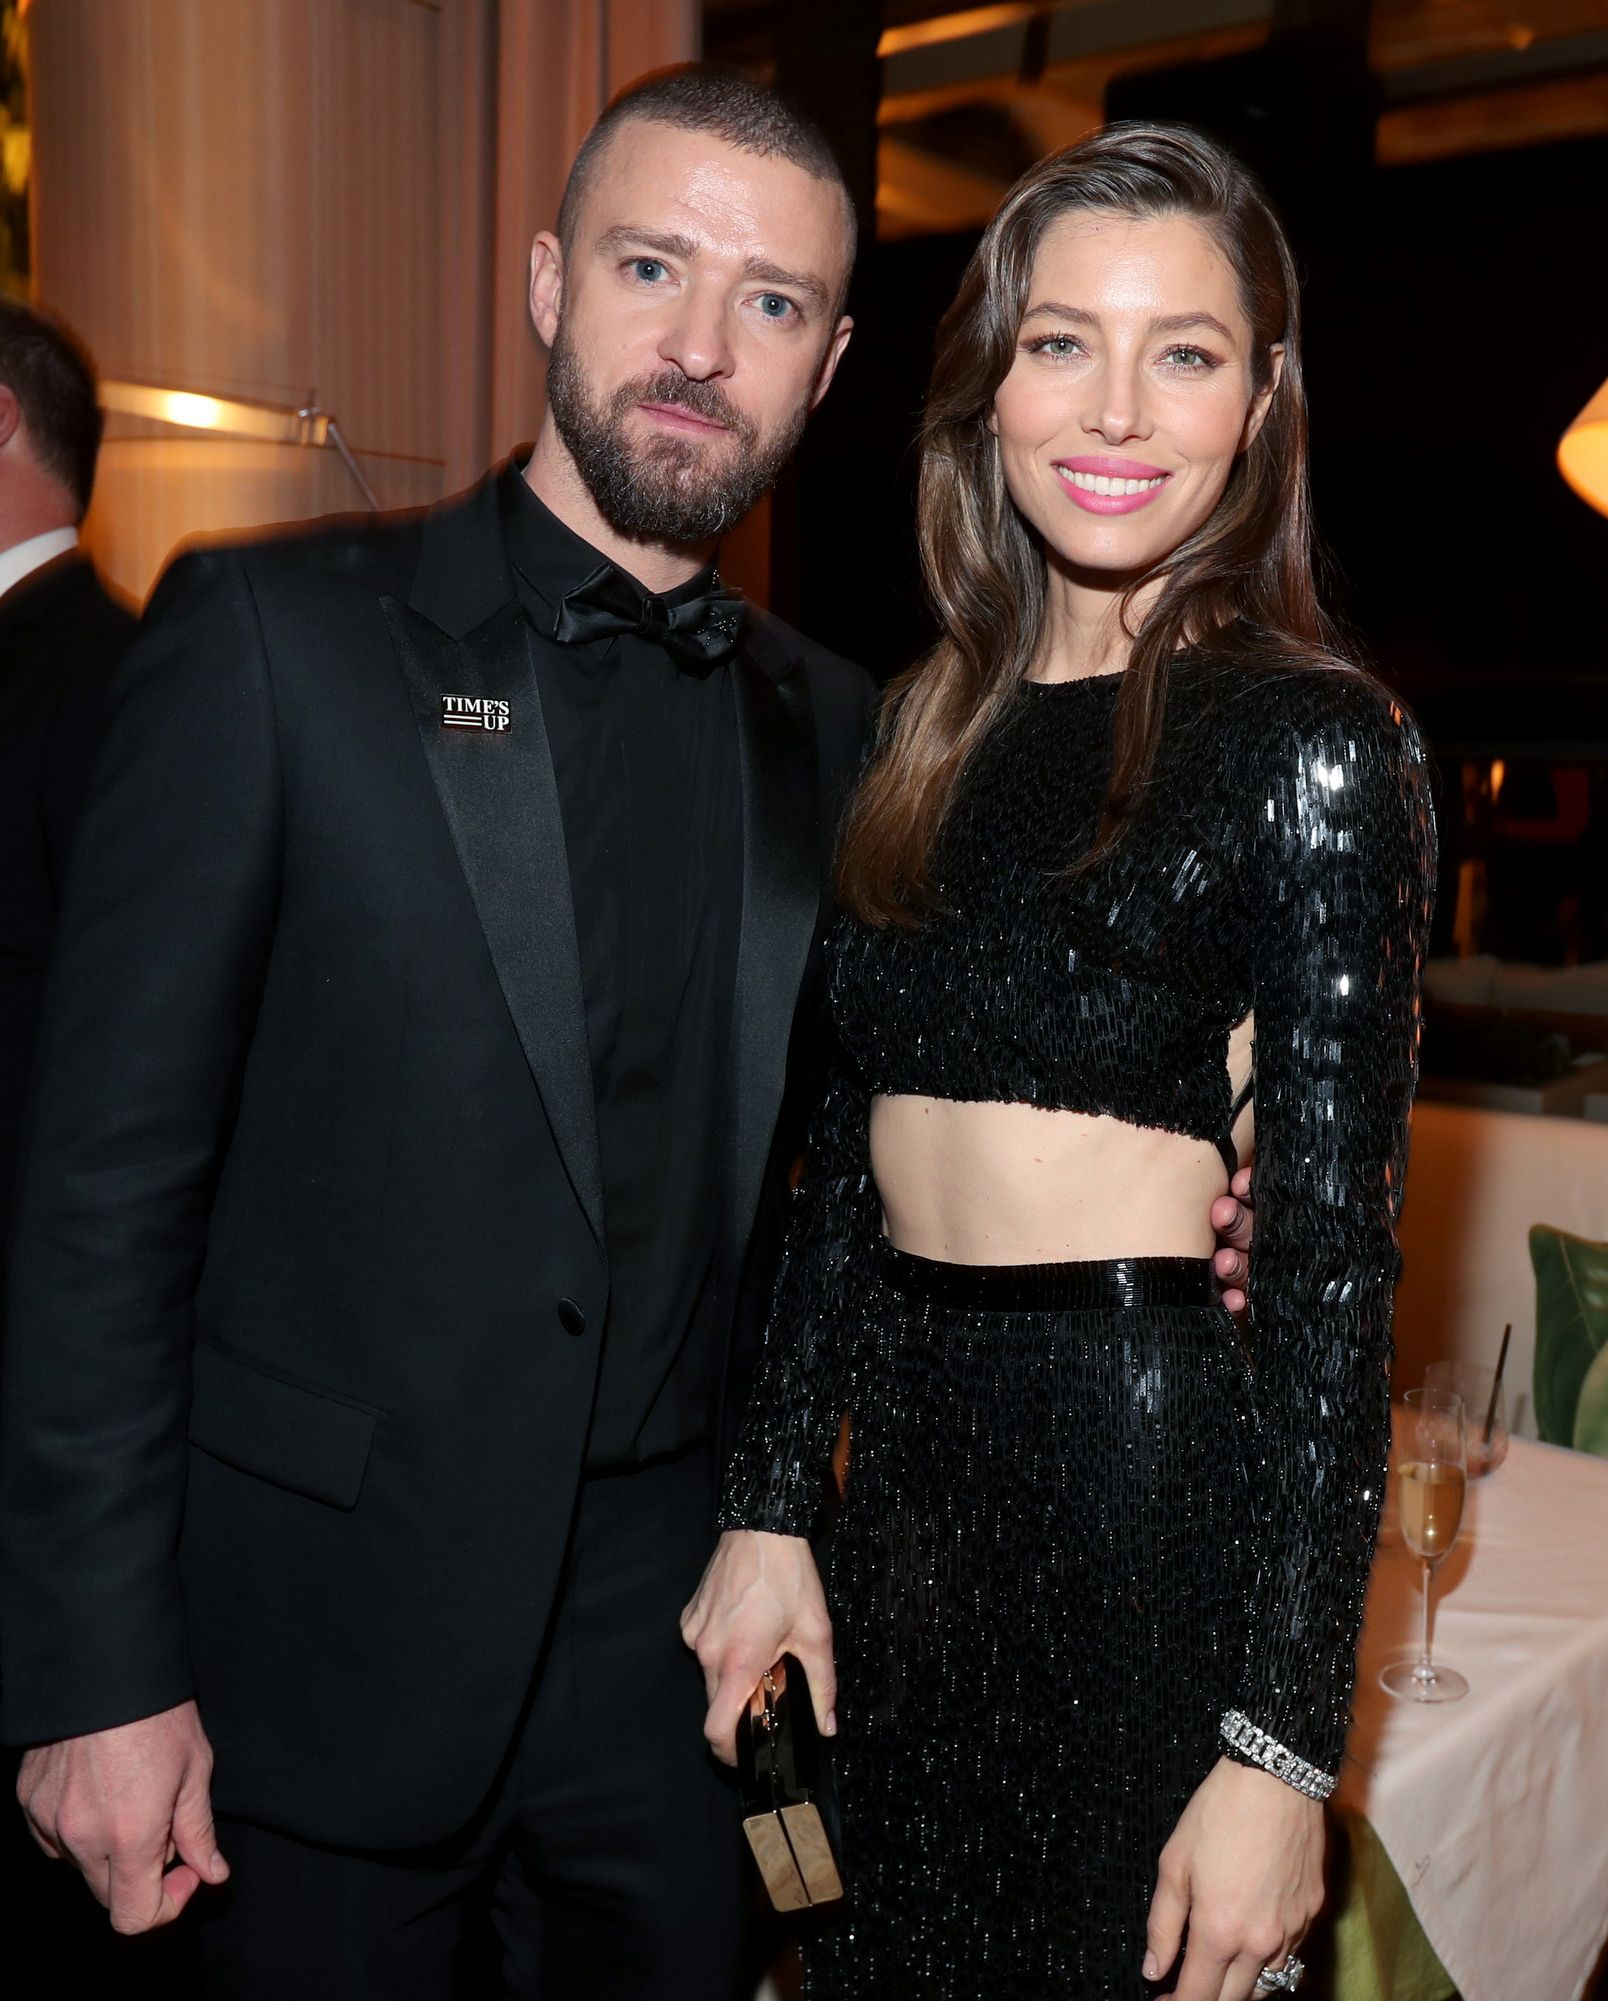 Justin Timberlake and Jessica Biel J & J had a mutual friend that made the intro which led to their love. The pair met in 2007, fresh out of other relationships (Biel with Chris Evans and Timberlake with Cameron Diaz), and so were not looking for anything serious.